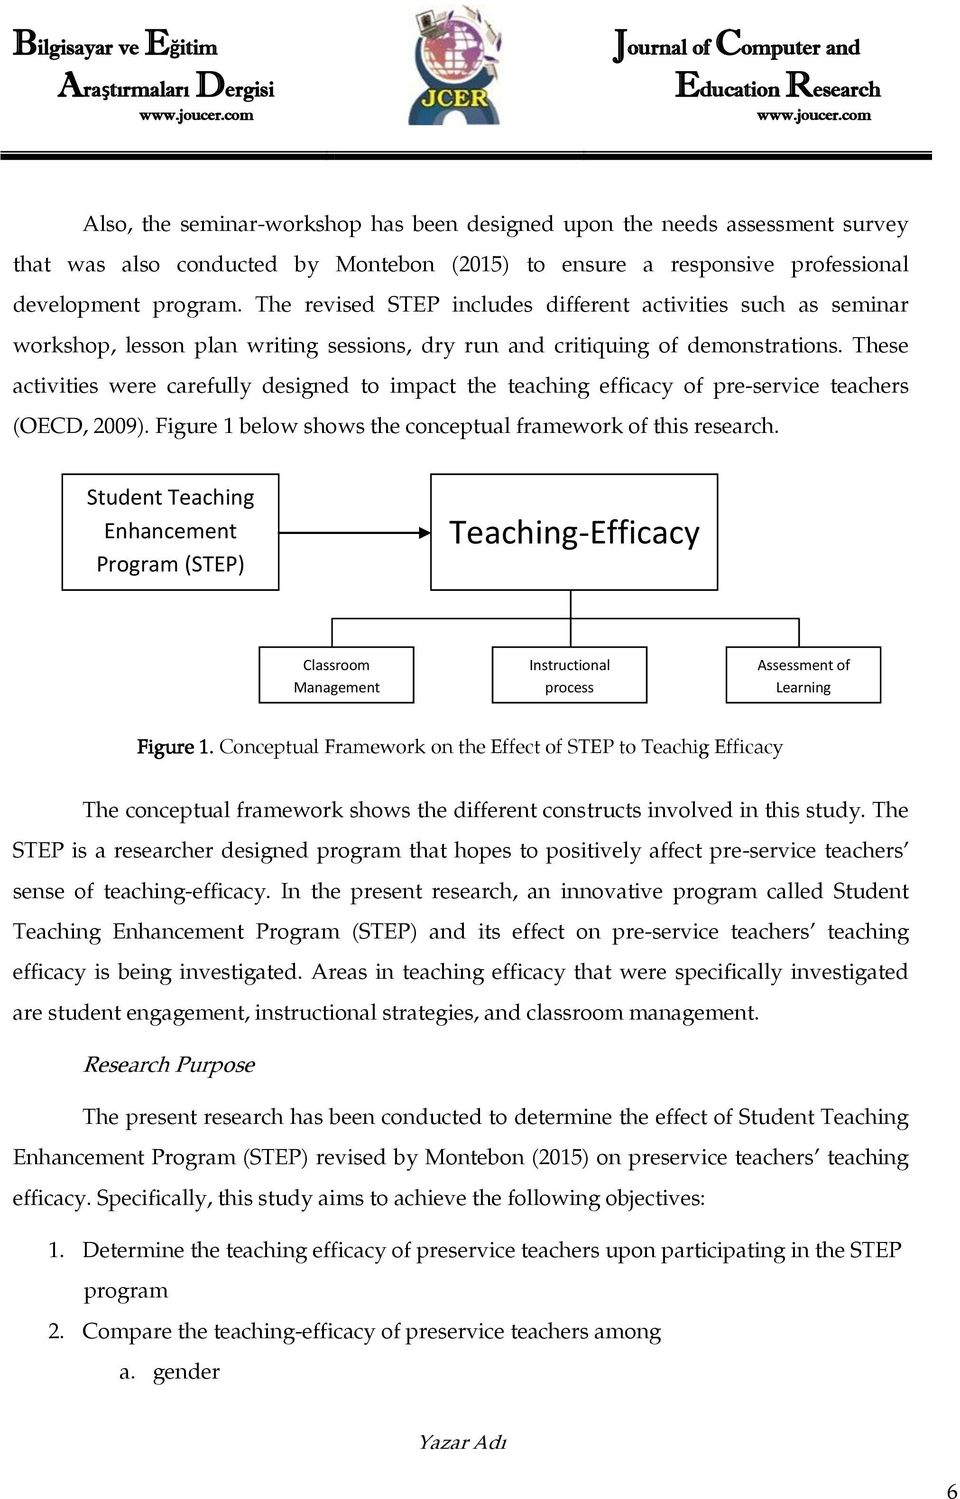 These activities were carefully designed to impact the teaching efficacy of pre-service teachers (OECD, 2009). Figure 1 below shows the conceptual framework of this research.